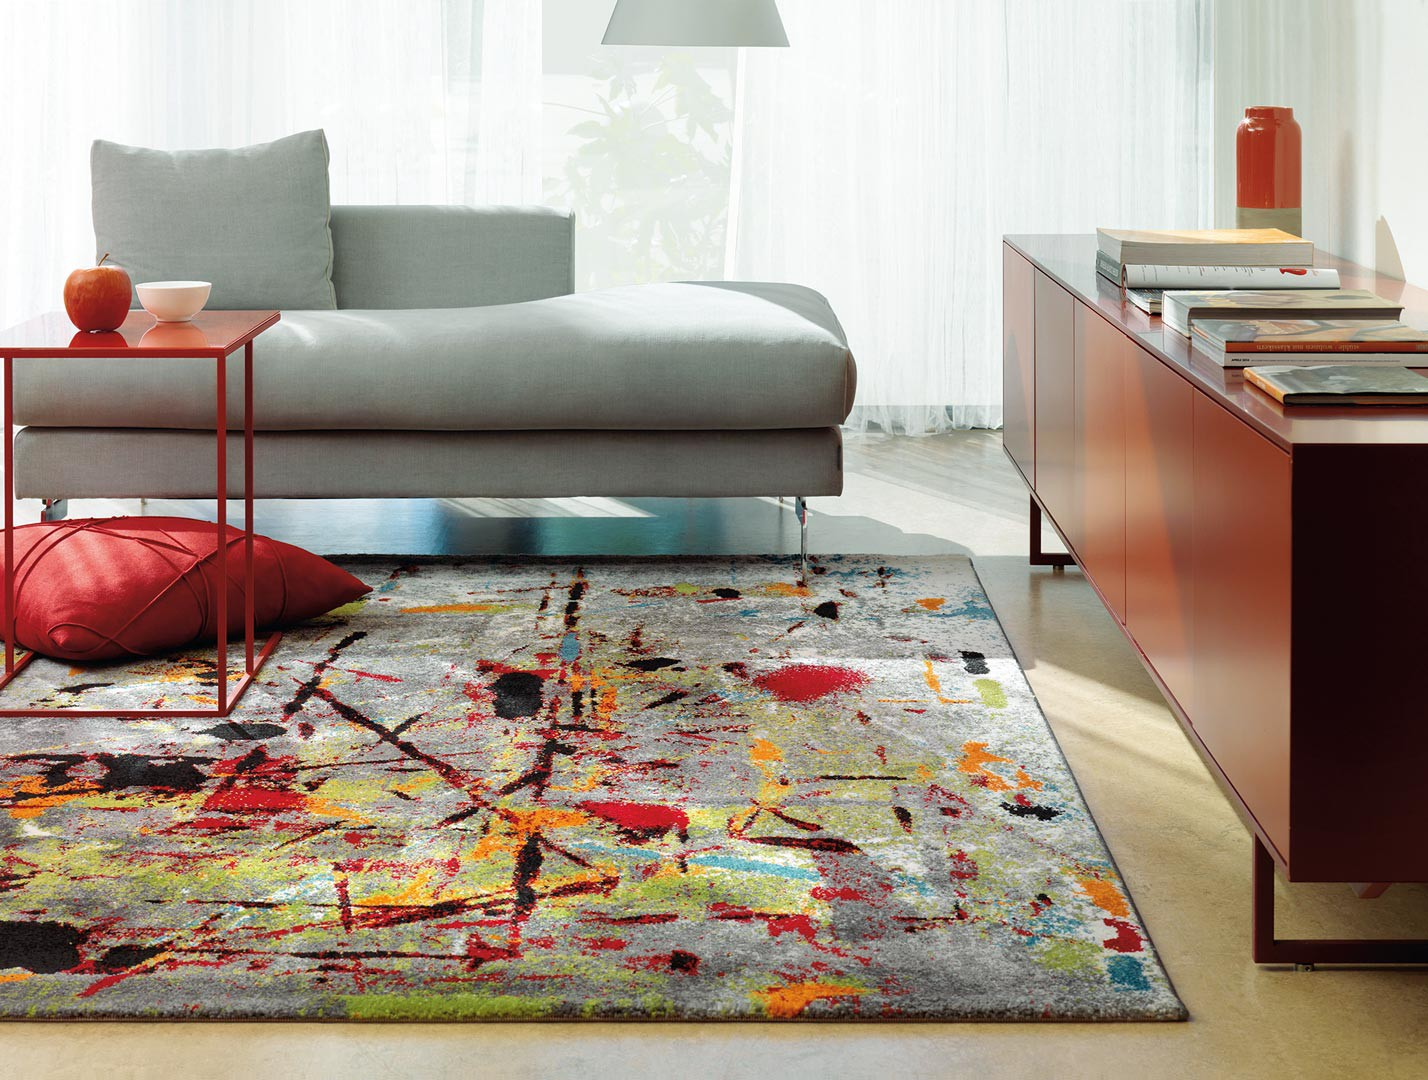 Tapis de salon moderne multicolore slam arte espina for Tapis decoratif pour salon